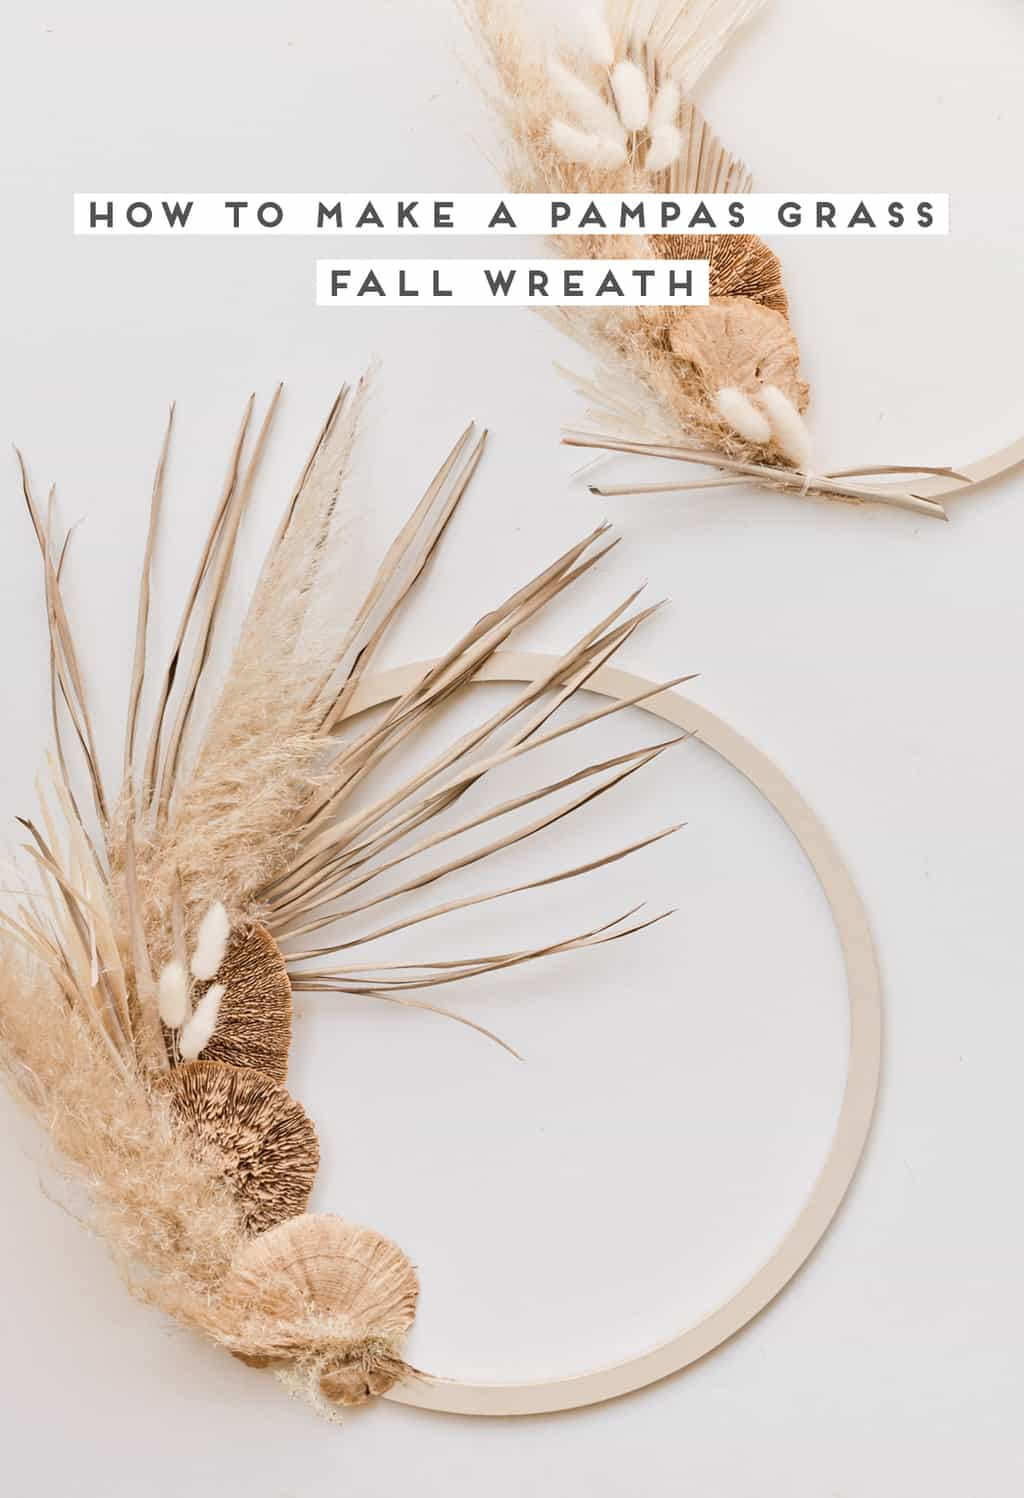 An image of papa grass and dried floral fall wreaths.